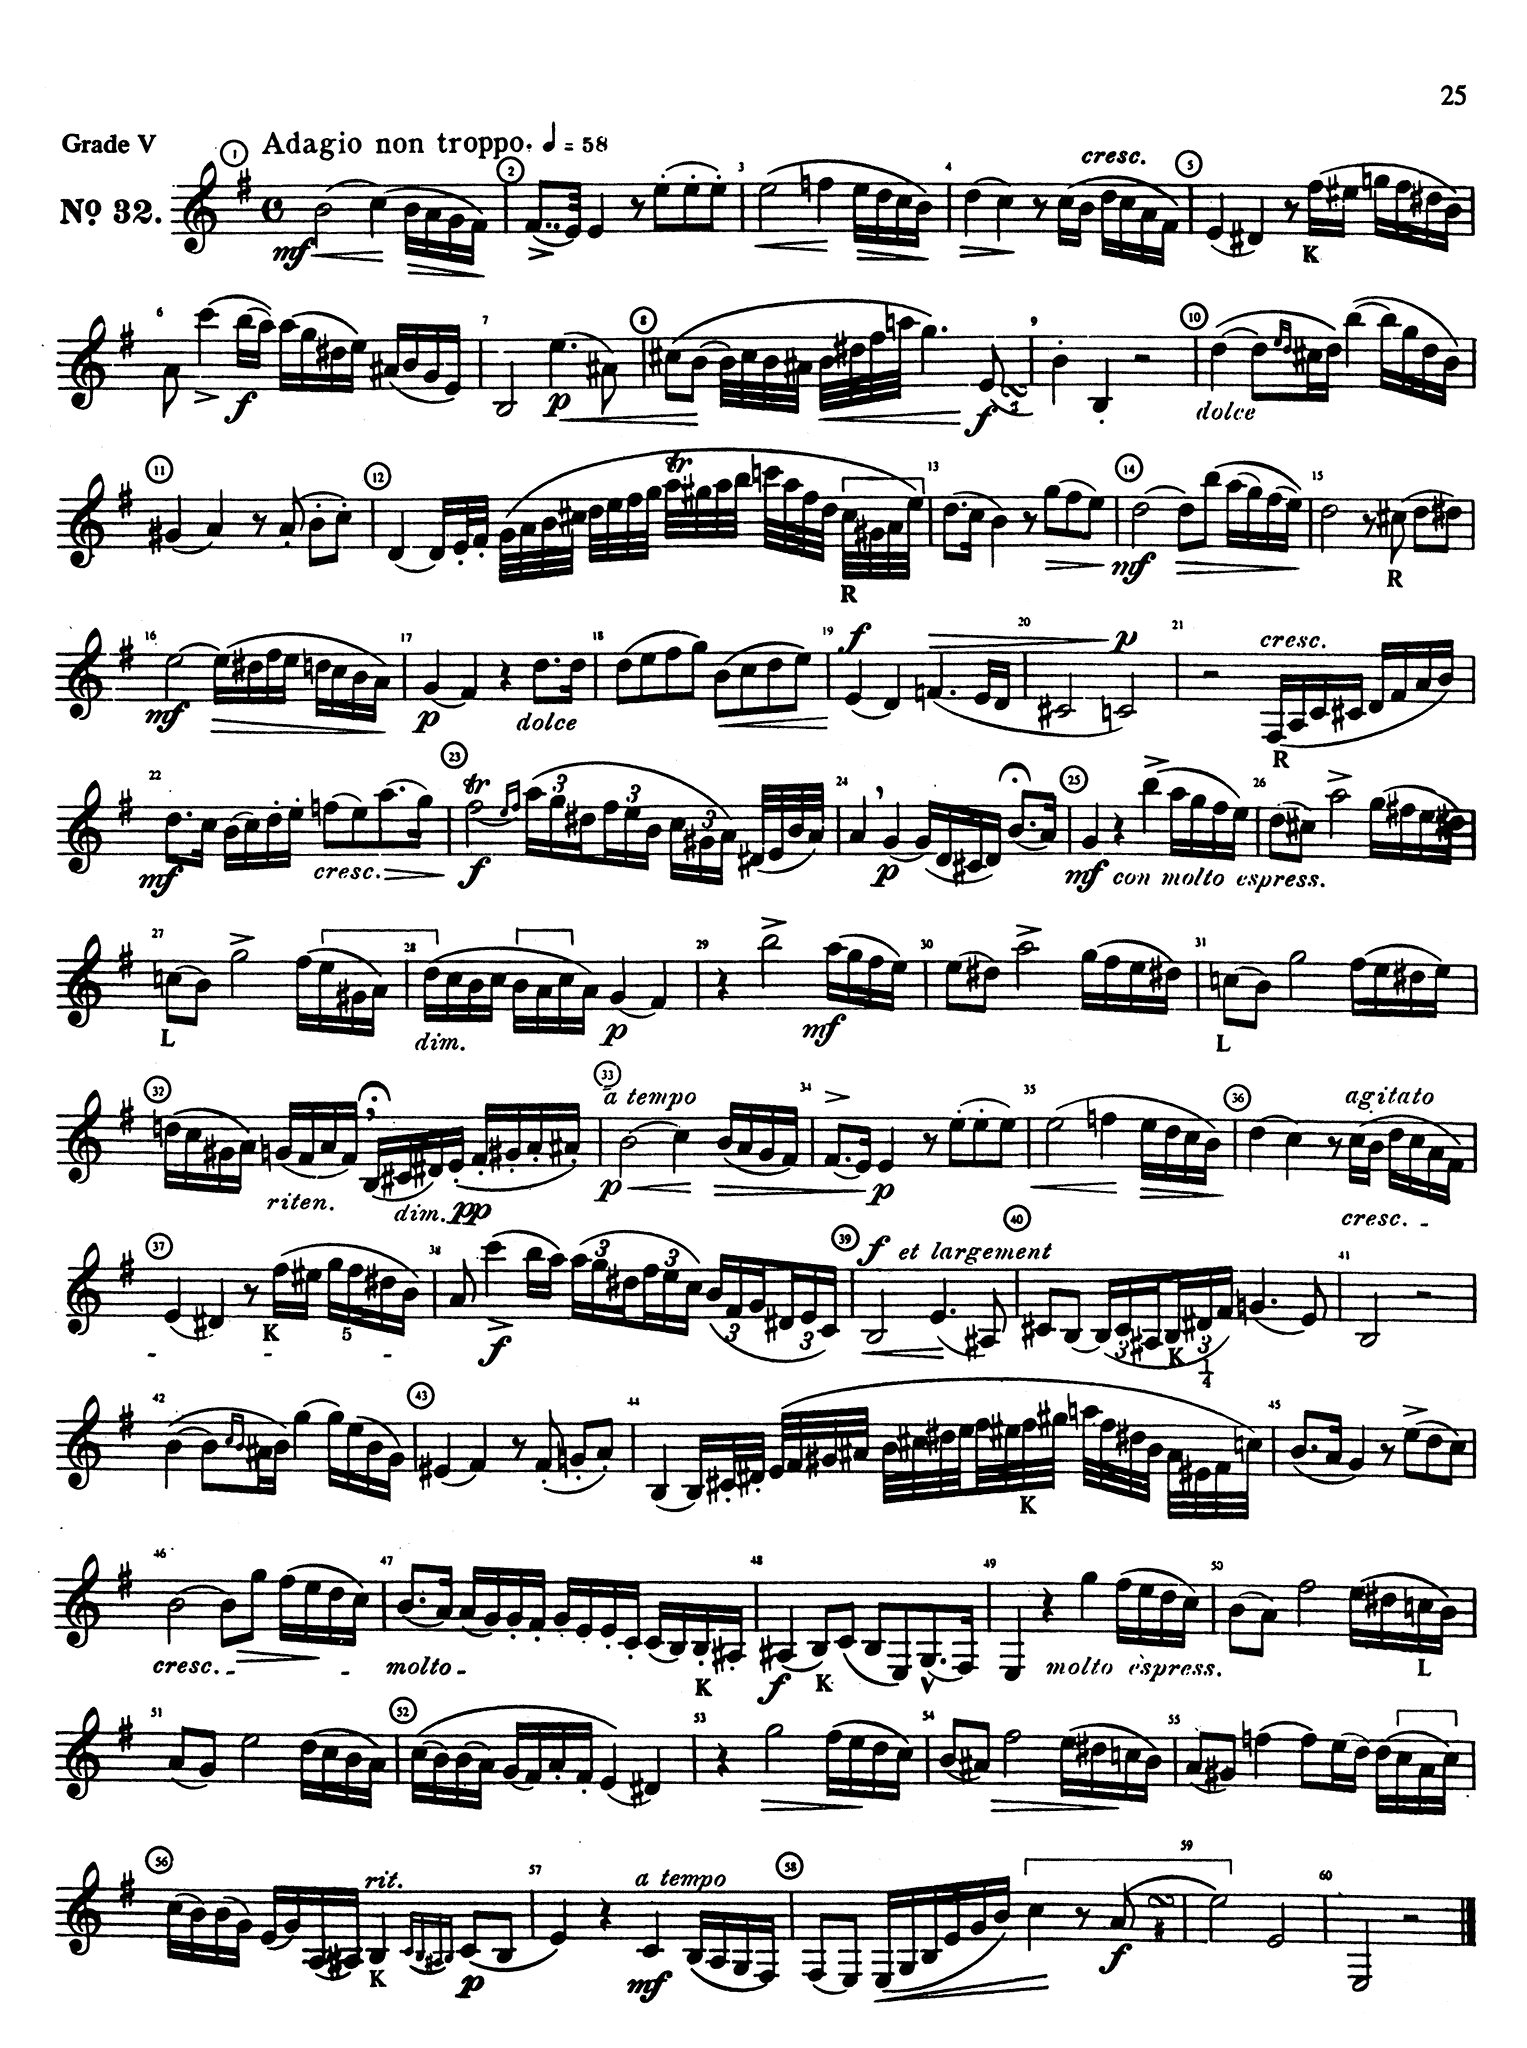 Rose 40 Études for Clarinet, Book 2 Page 25